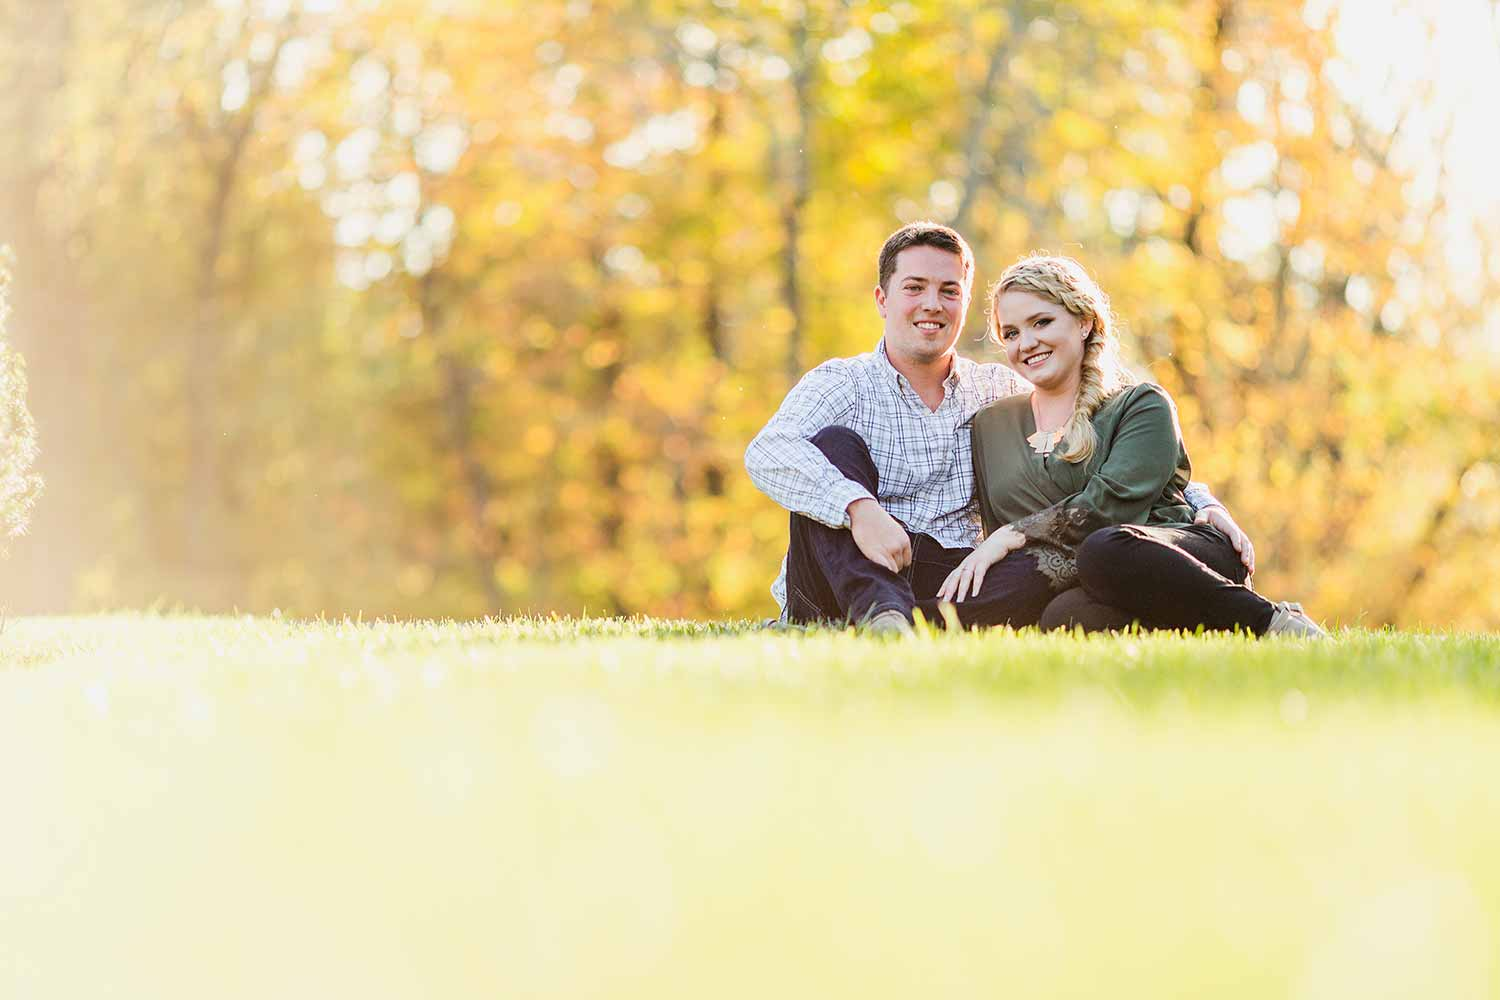 Engagement photos at Bucks County Community College